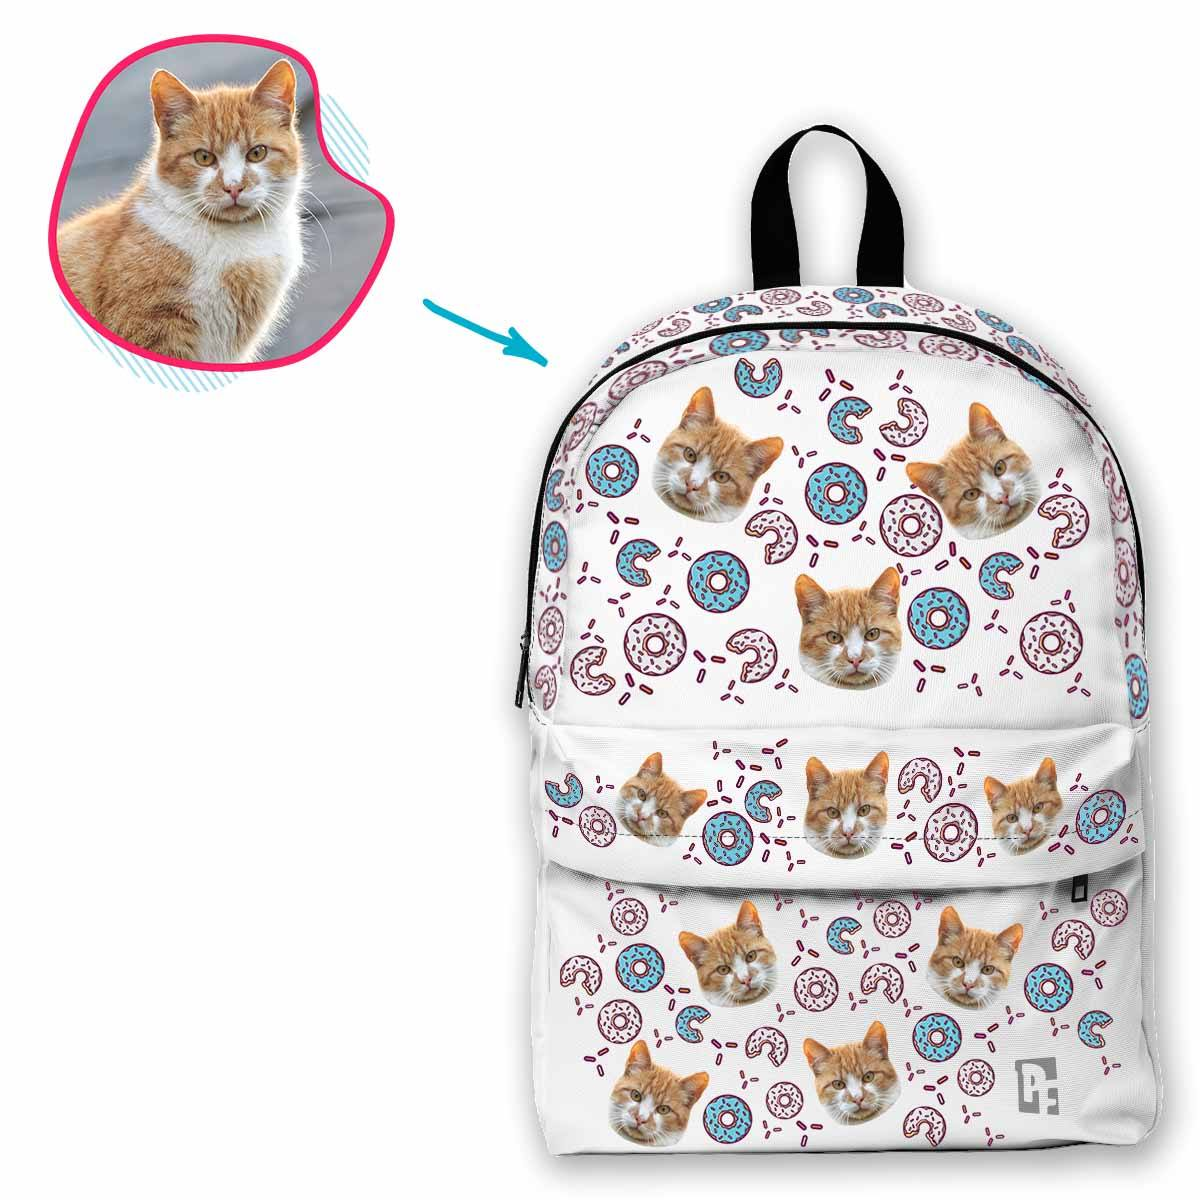 white Donuts classic backpack personalized with photo of face printed on it